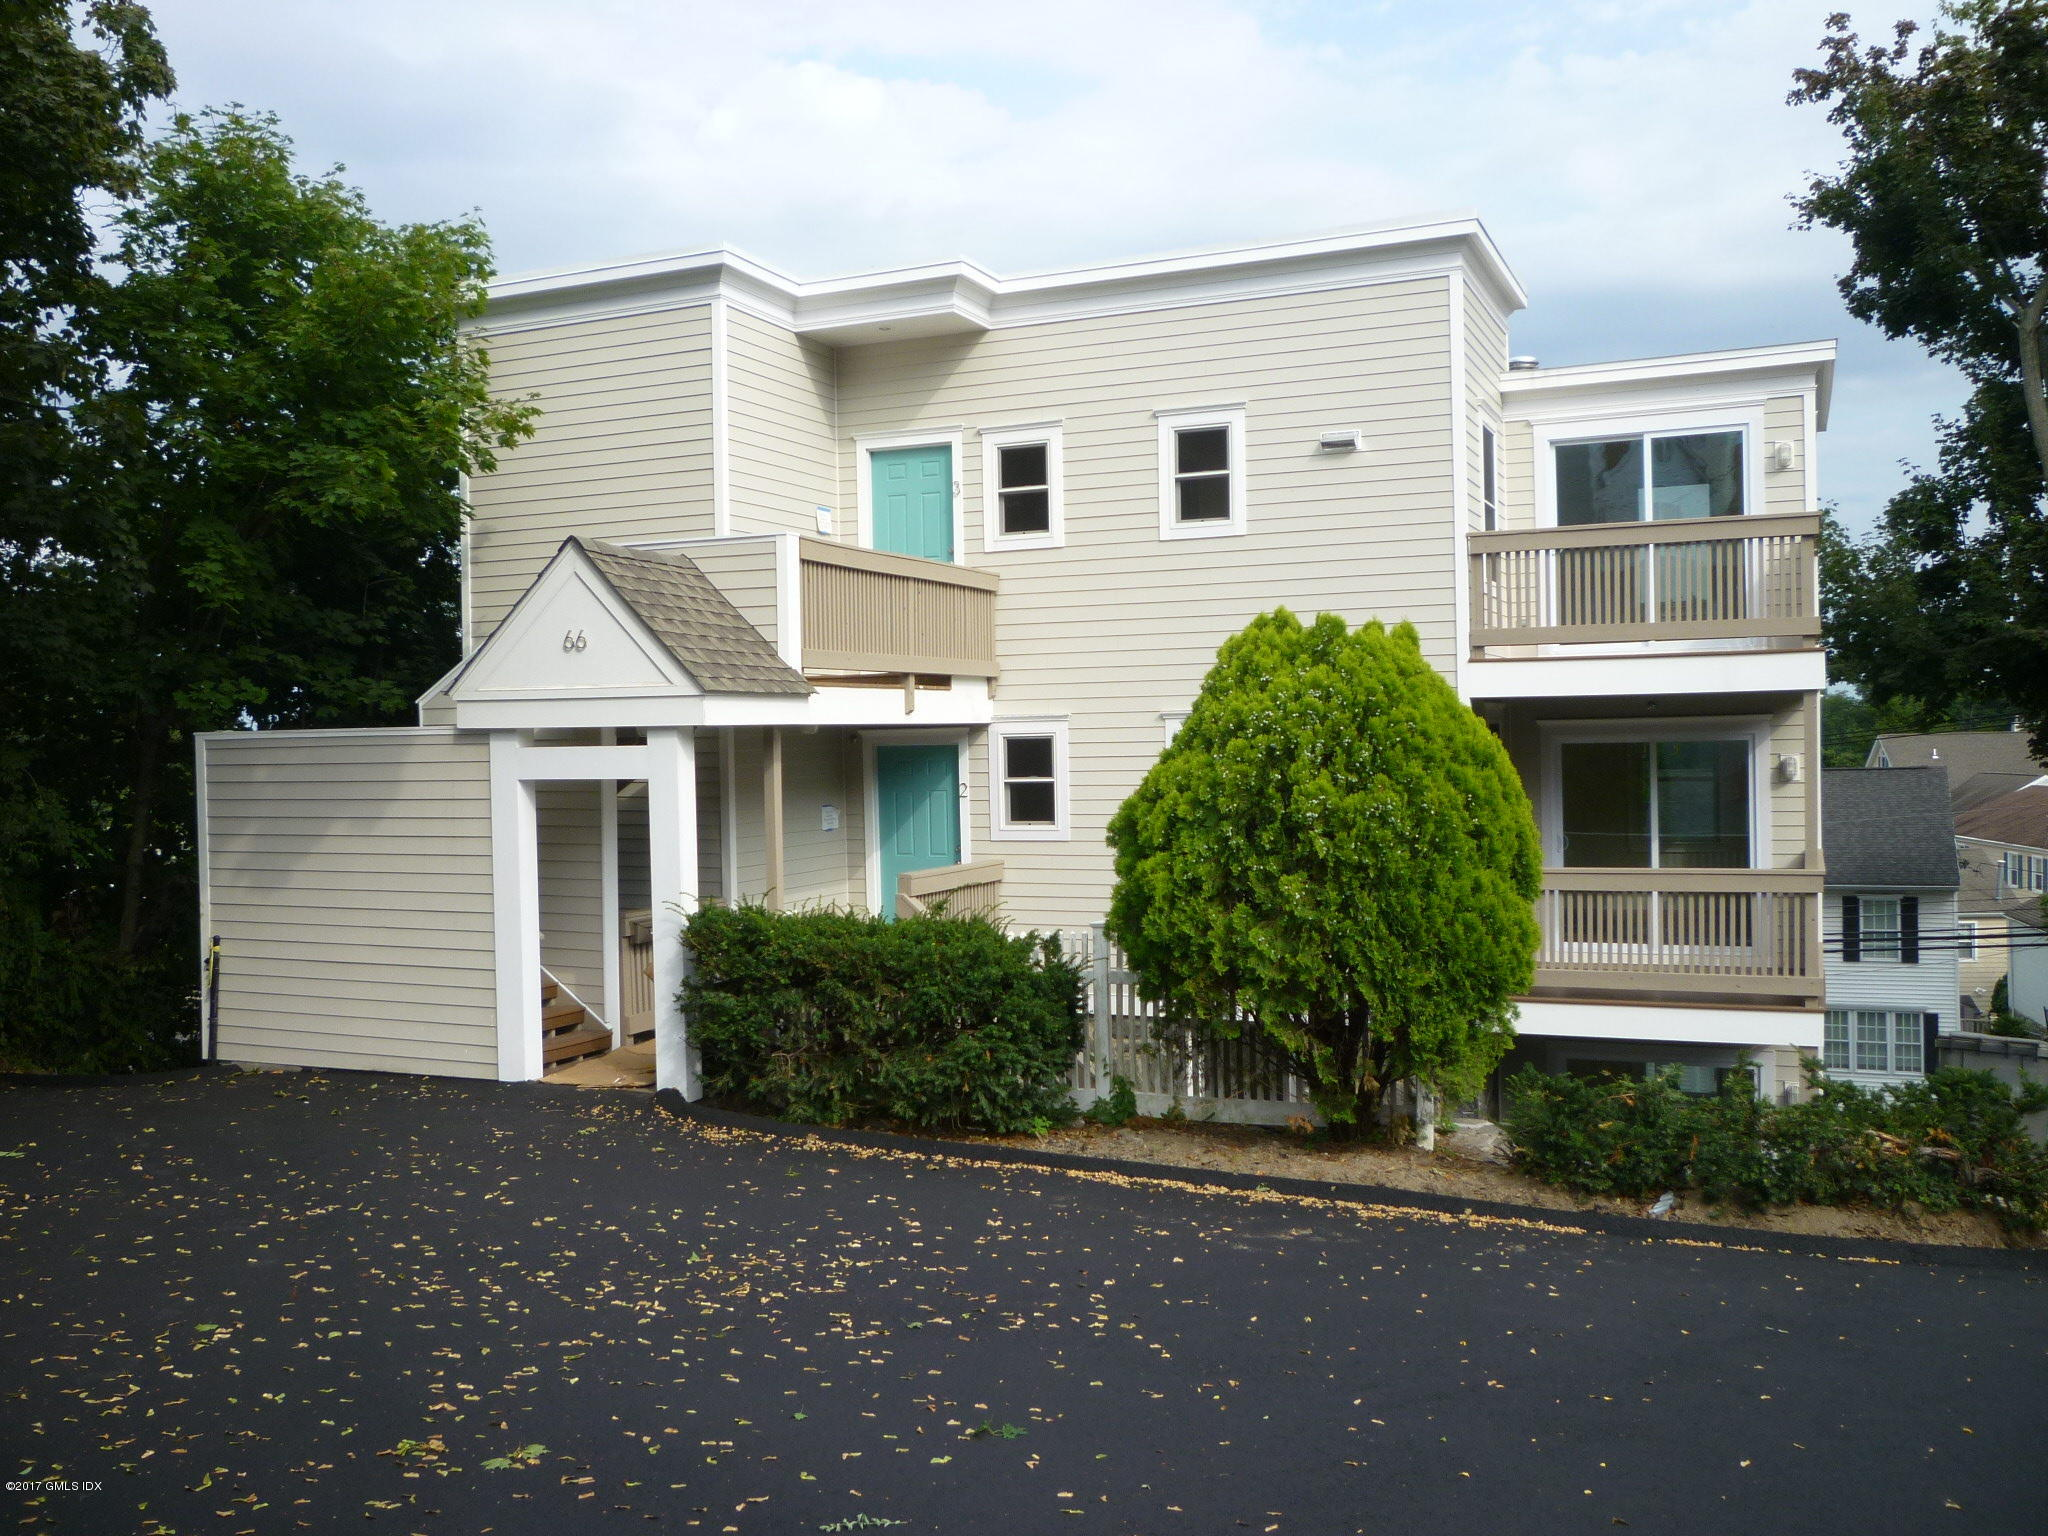 66 Ritch Avenue,Greenwich,Connecticut 06830,2 Bedrooms Bedrooms,2 BathroomsBathrooms,Apartment,Ritch,105197